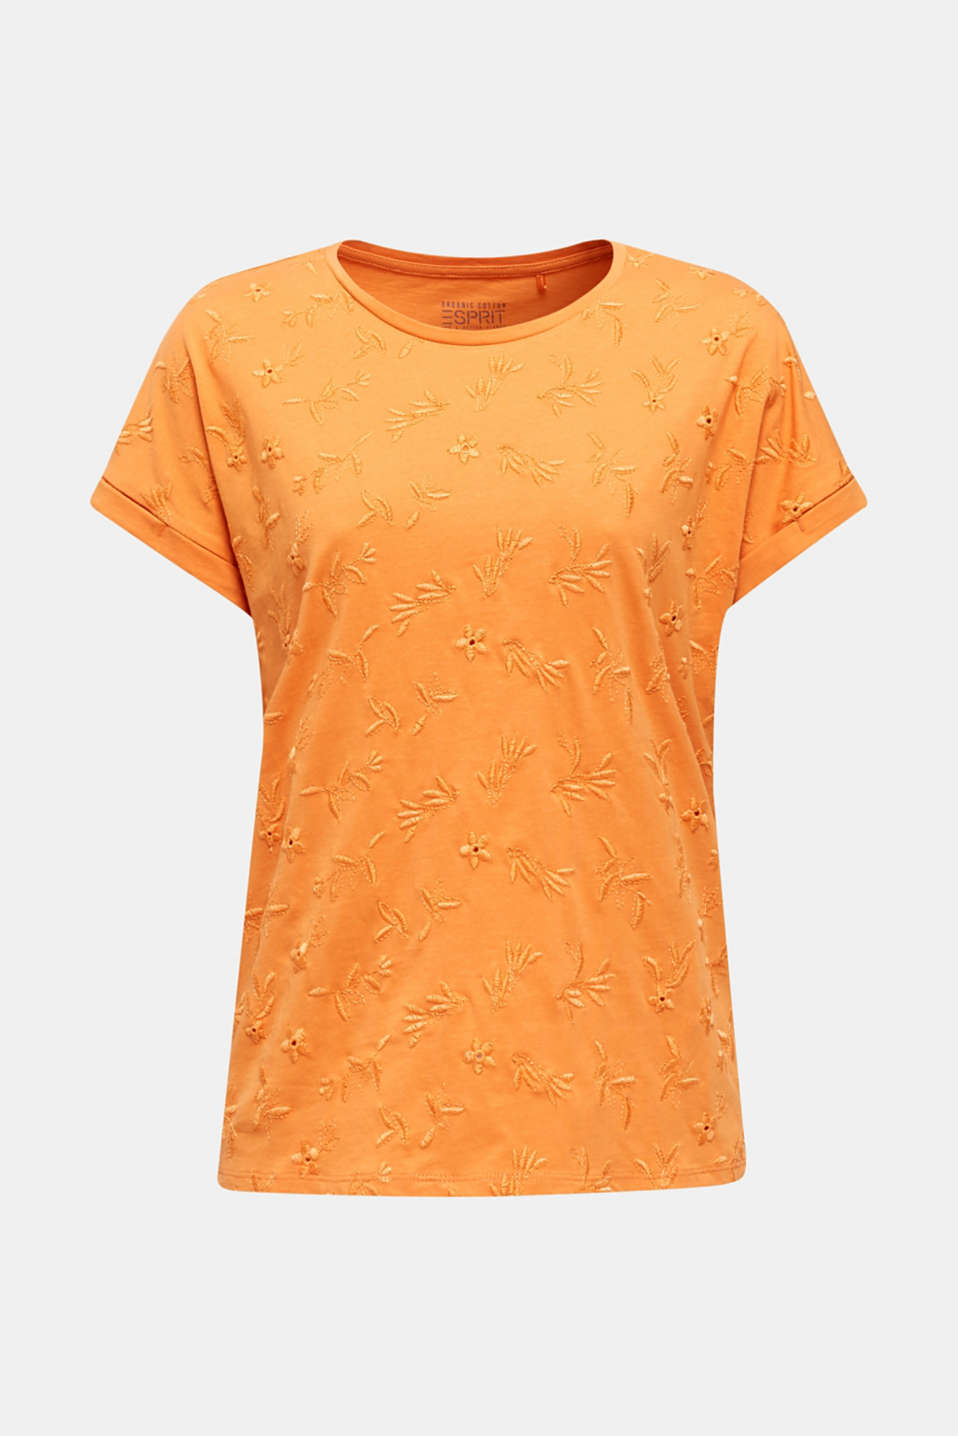 T-shirt with tonal embroidery, 100% organic cotton, RUST ORANGE, detail image number 6